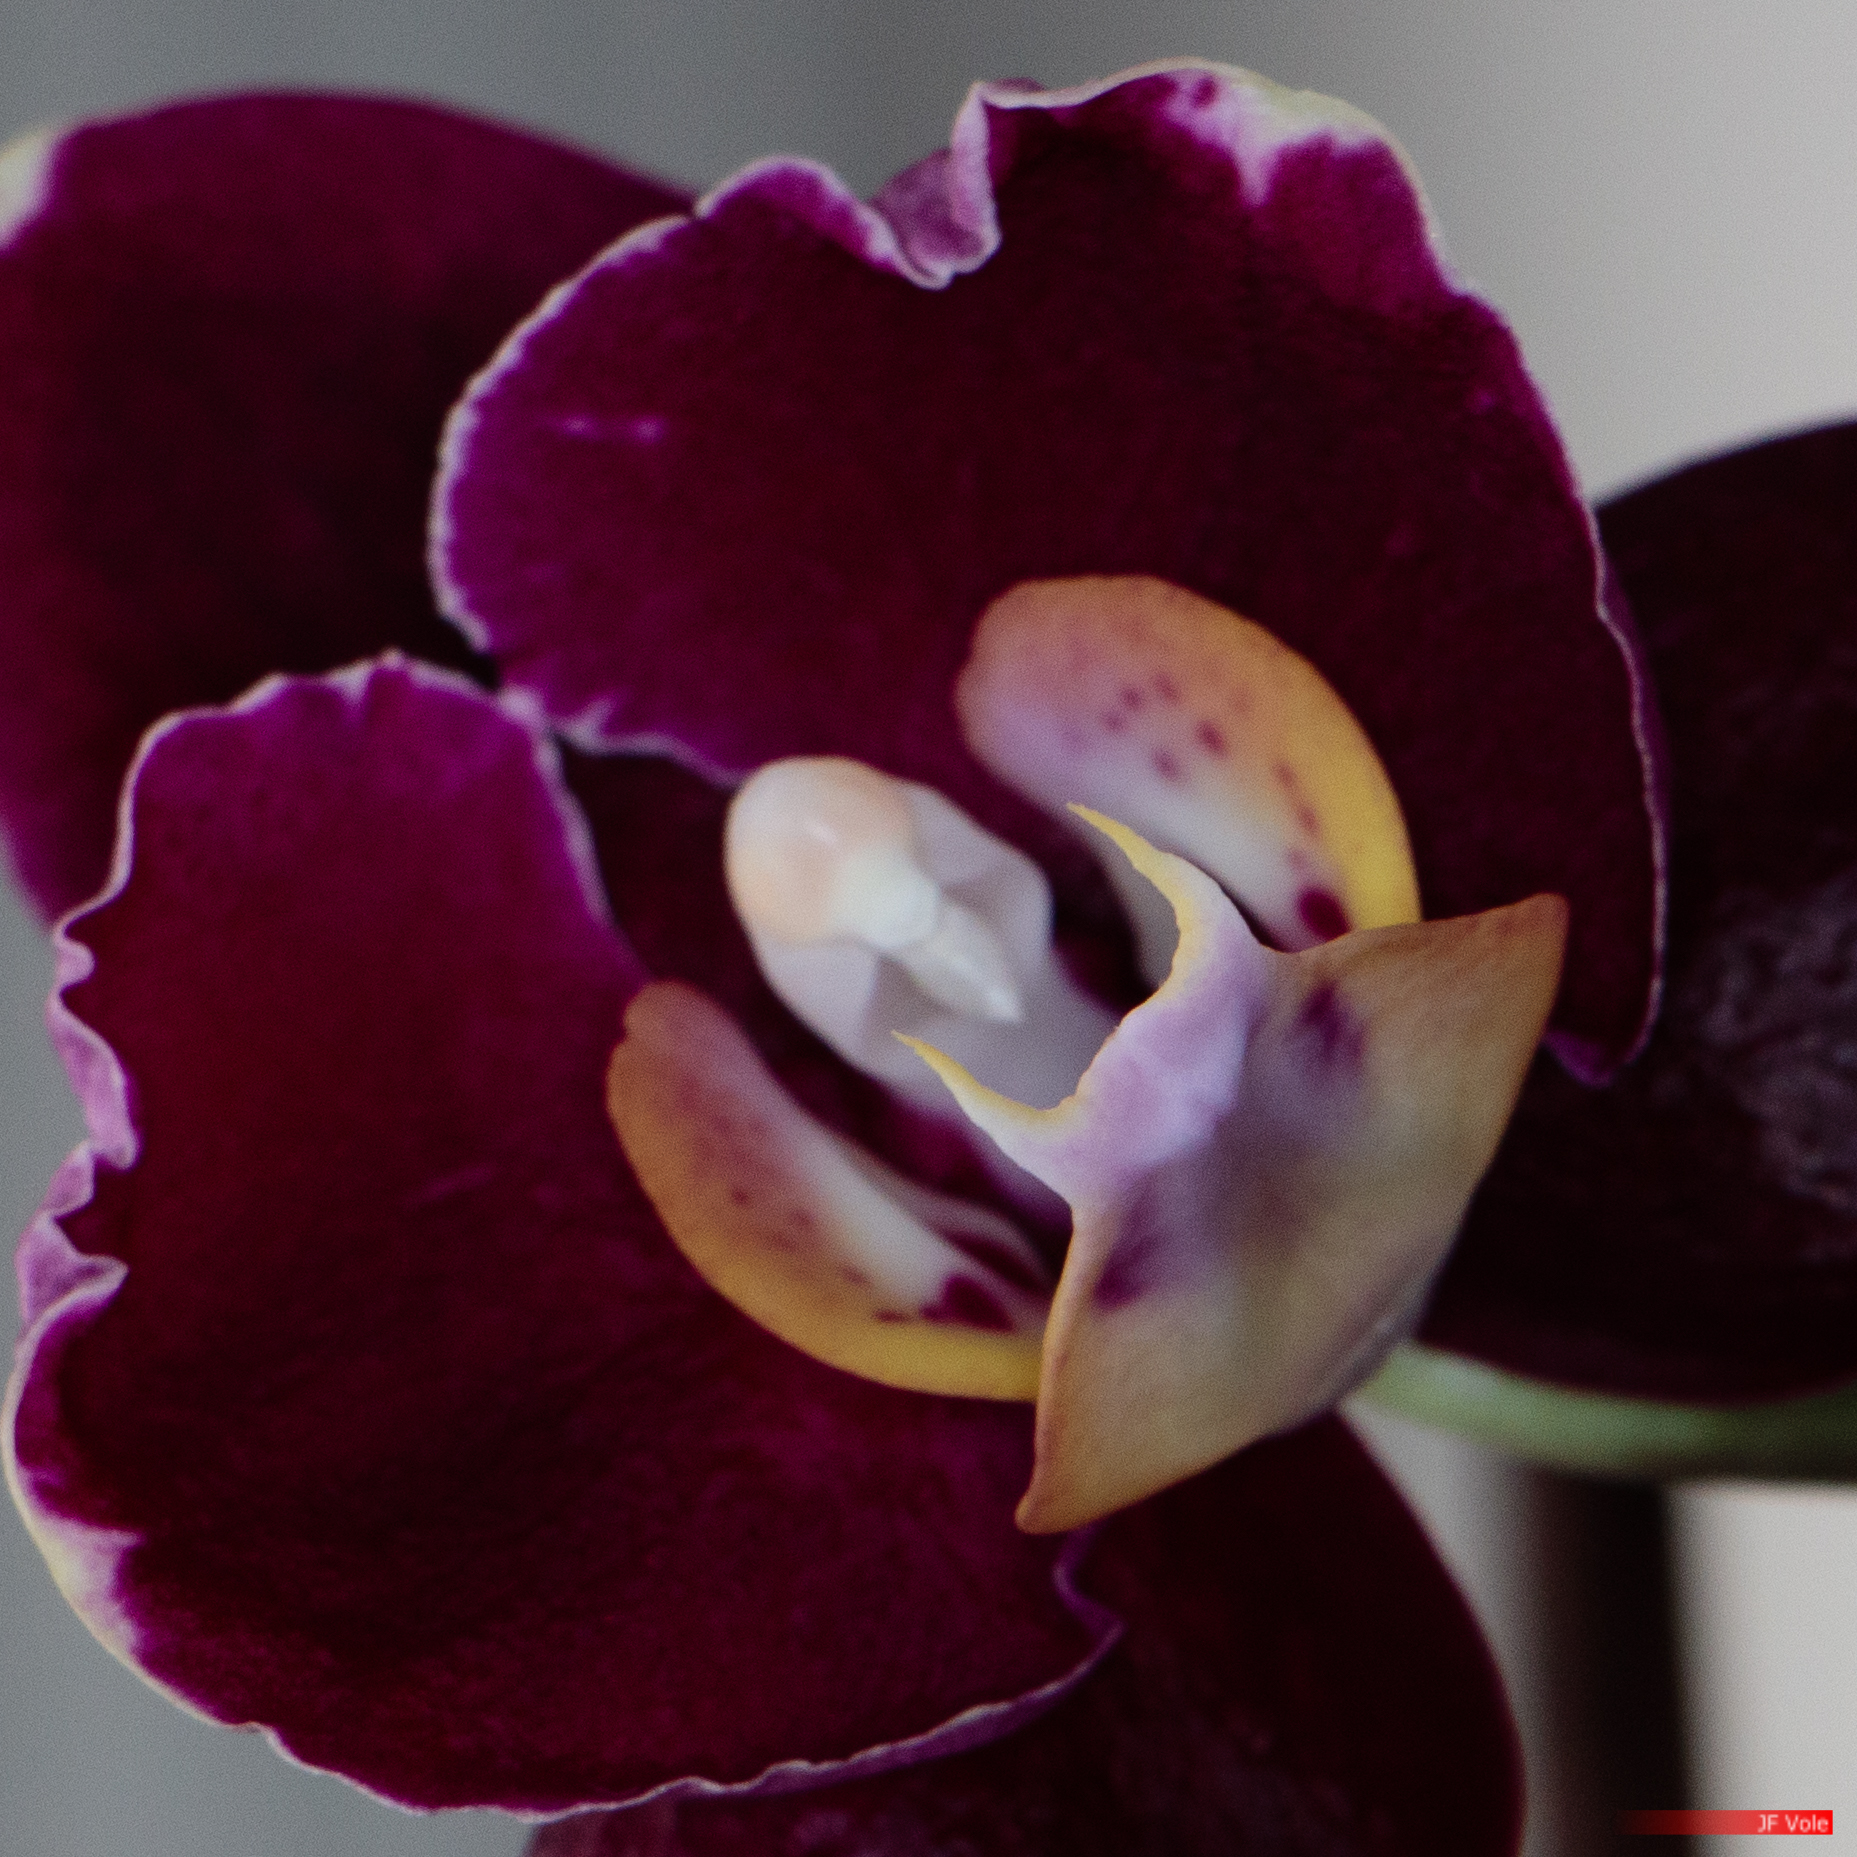 Flash annulaire - 1/15 s - f/8.0 - ISO 400